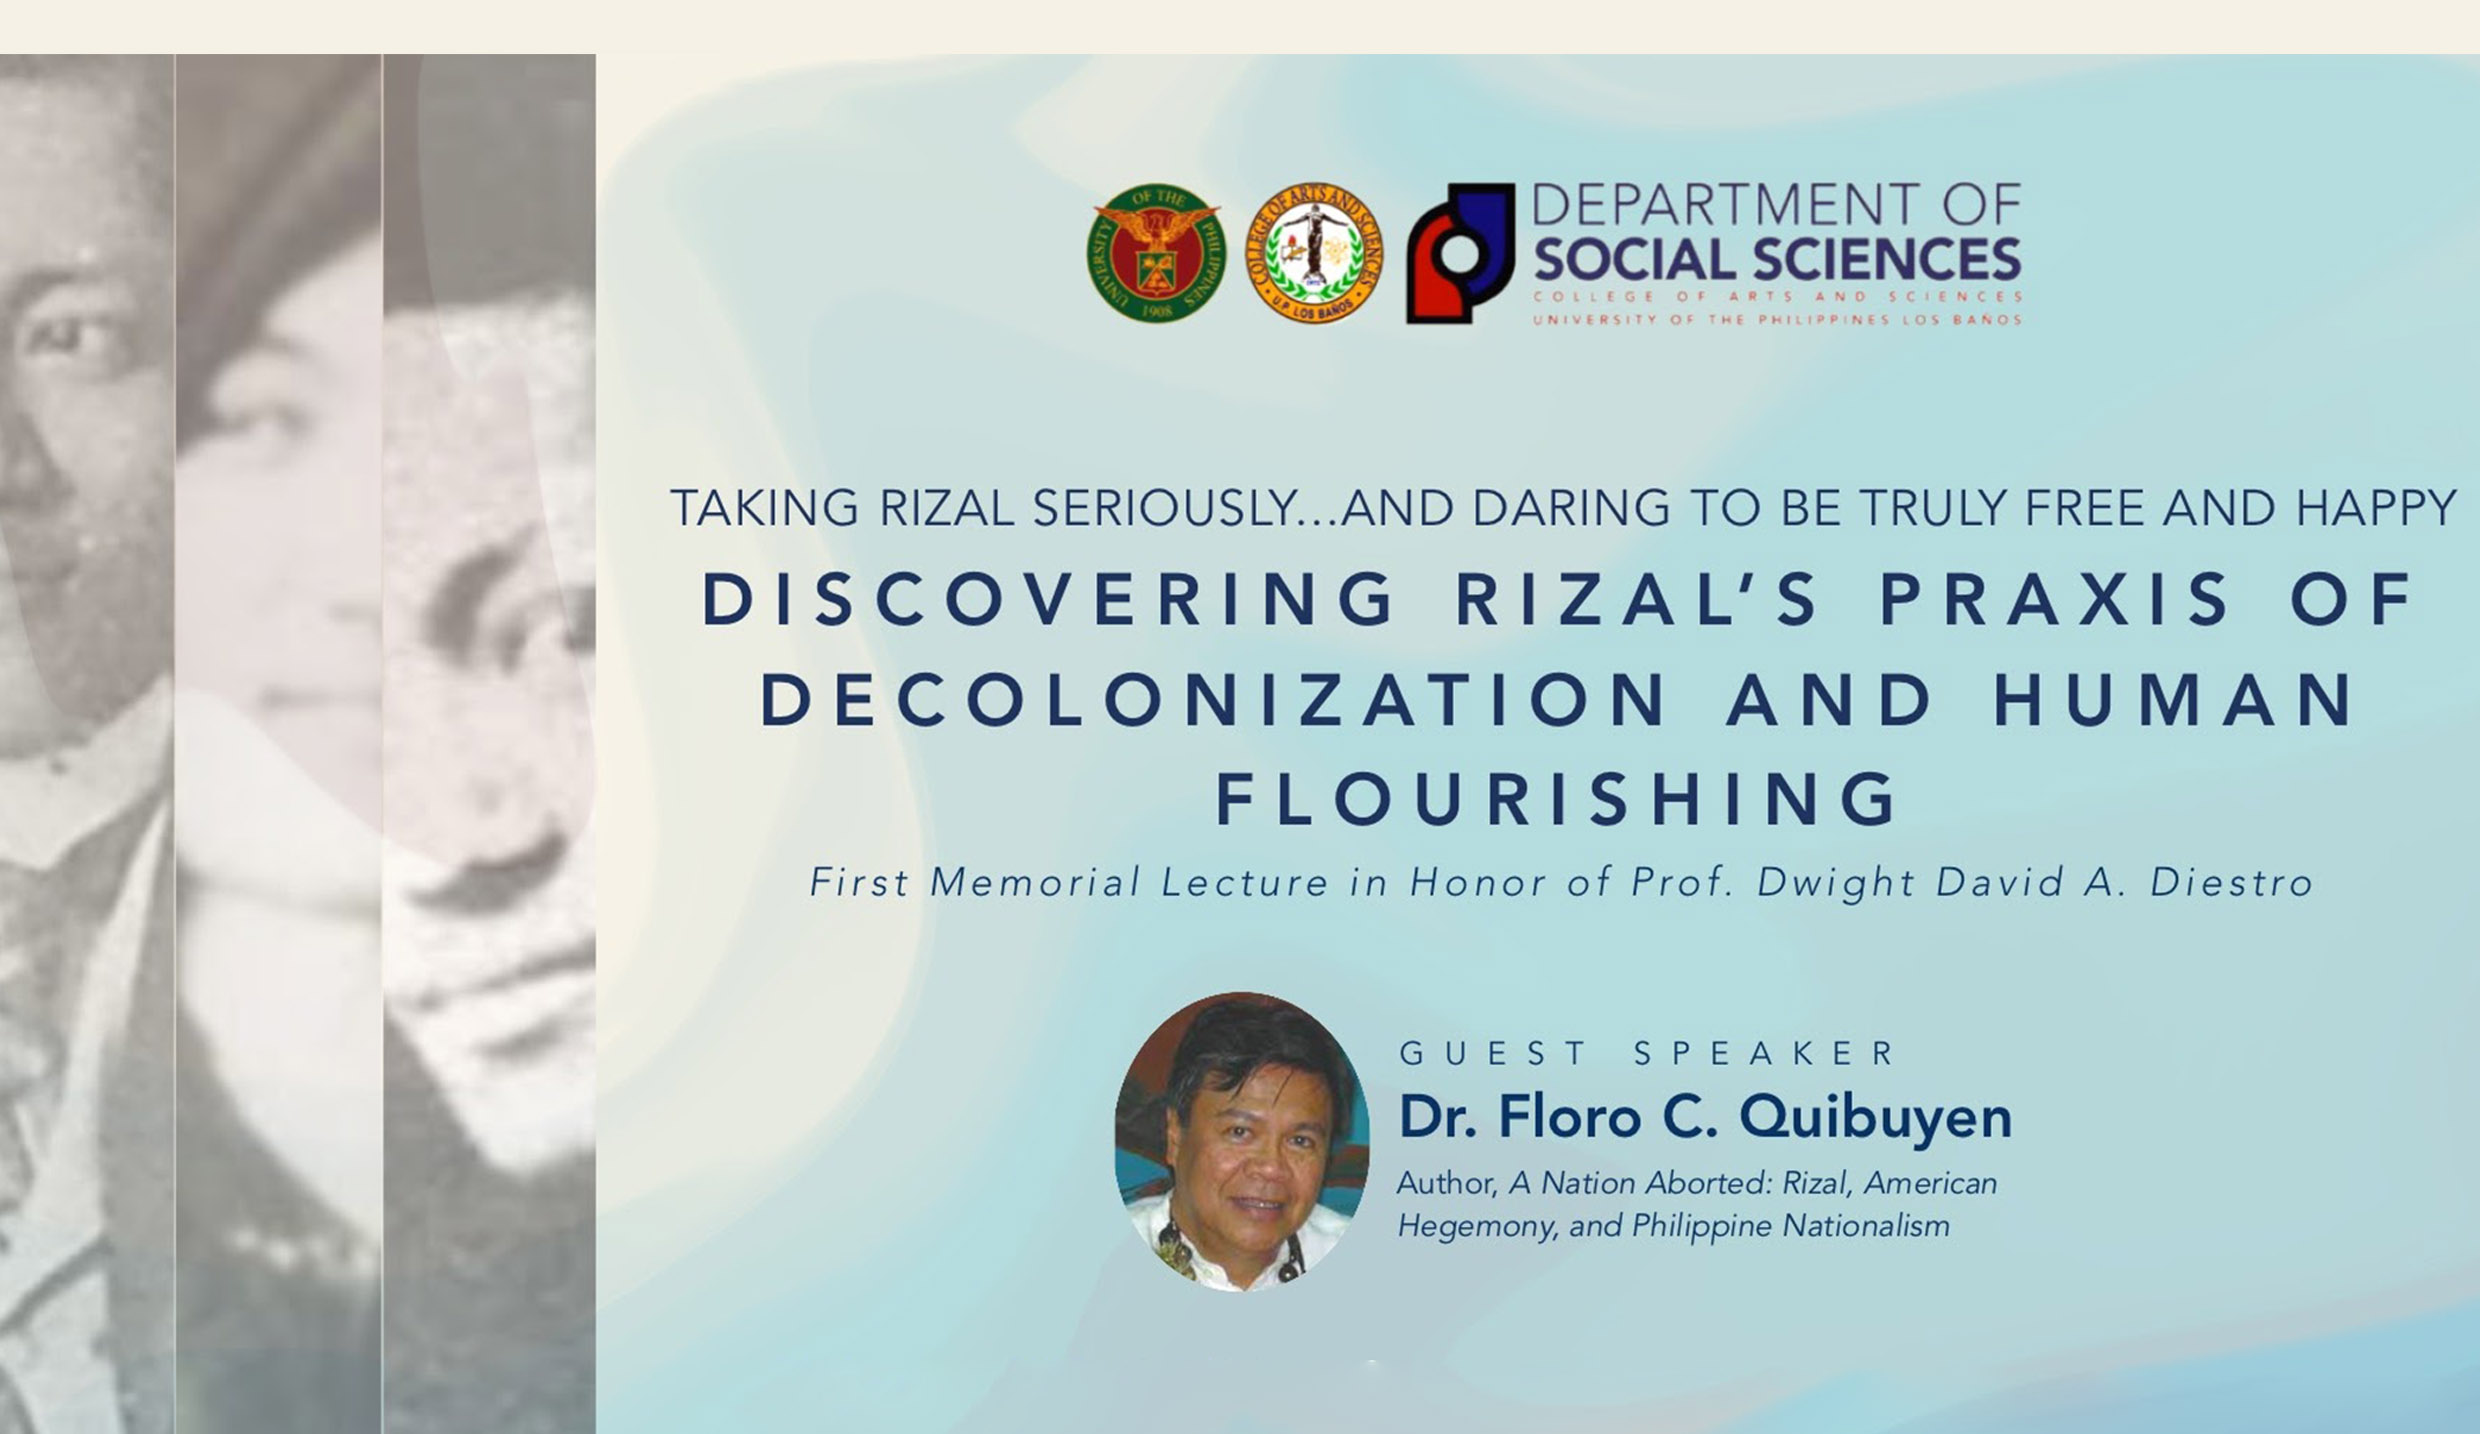 DSS holds first Dwight David A. Diestro annual lecture series